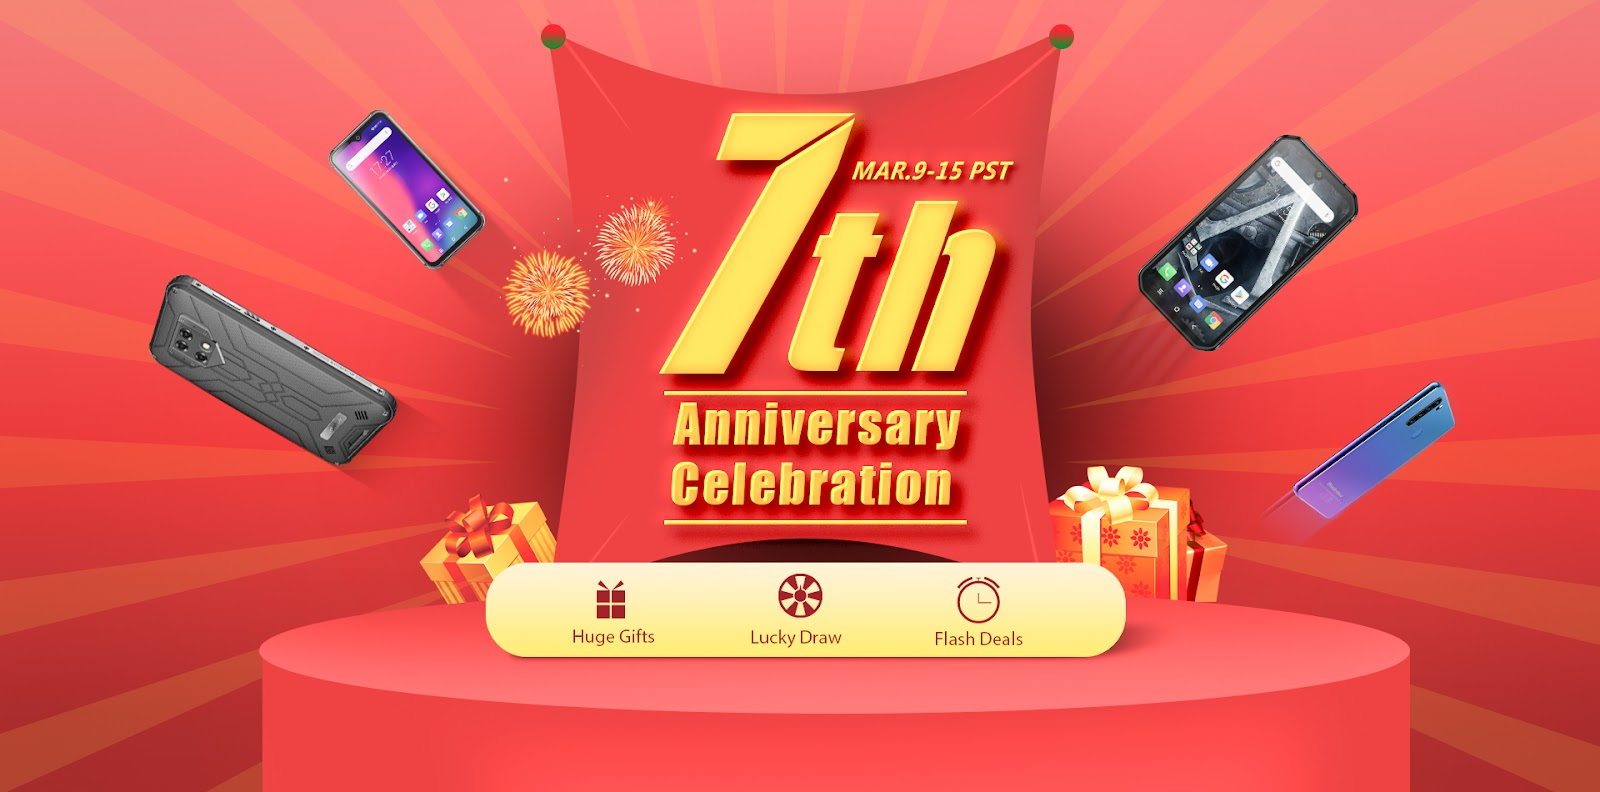 Blackview is celebrating its 7th Anniversary